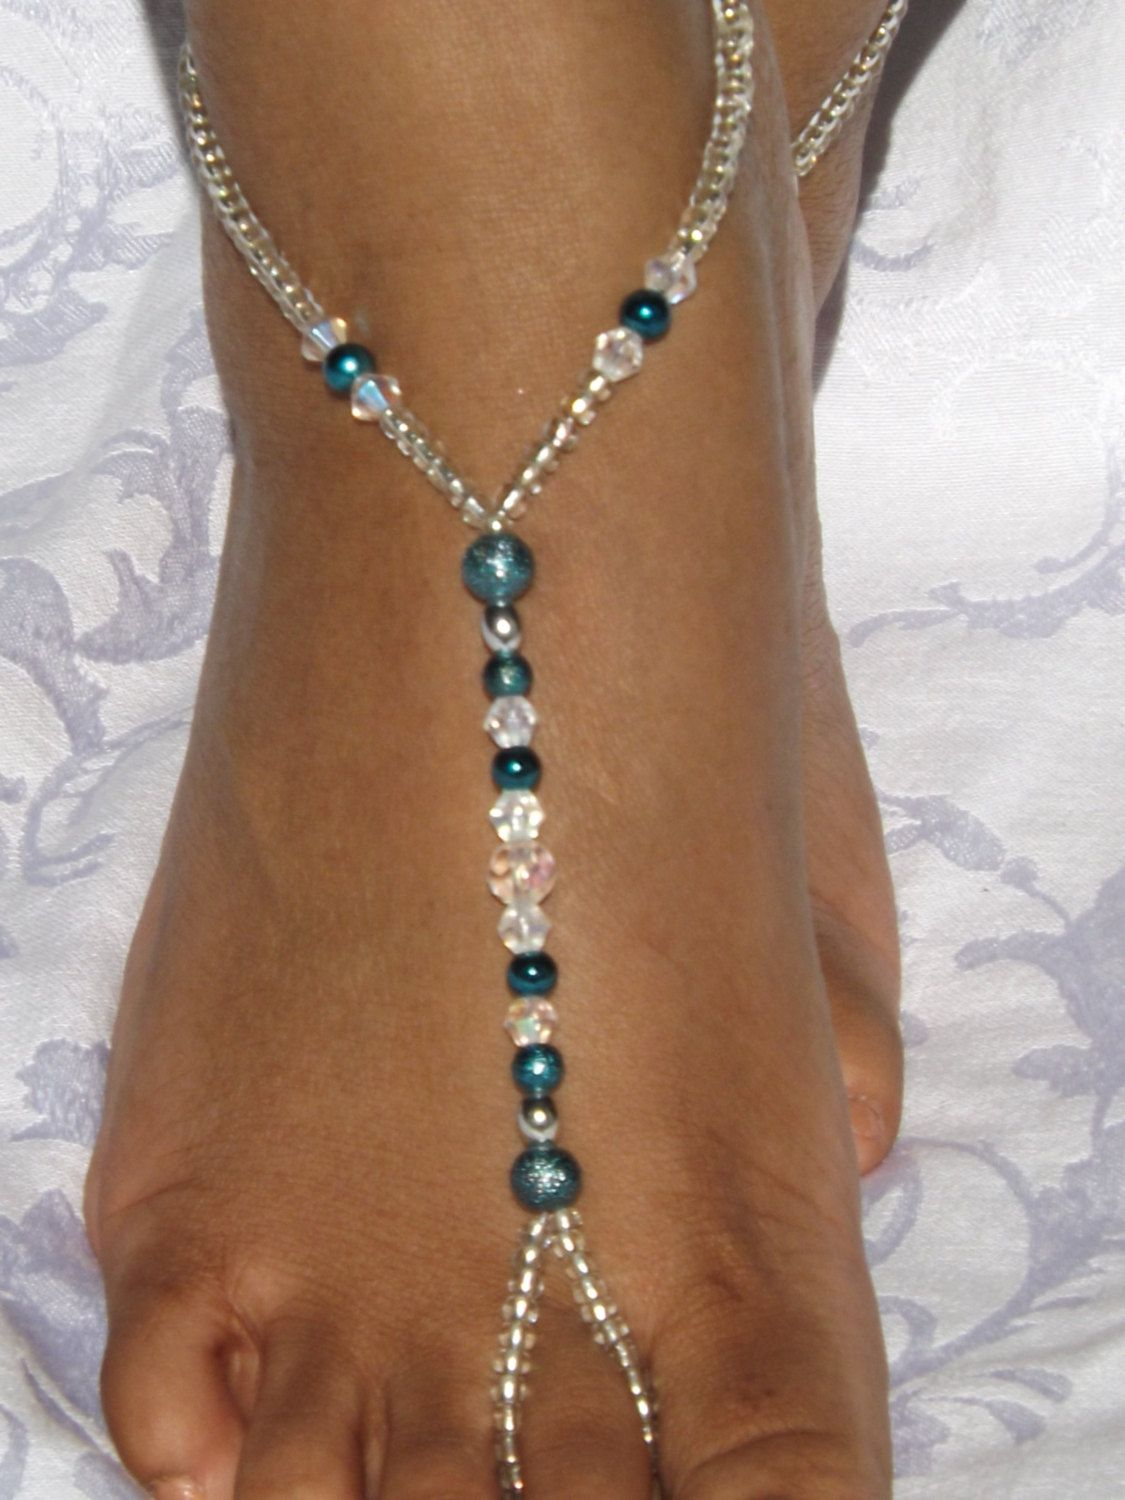 Barefoot Sandals Rhinestone Bridesmaids Gift Foot jewelry Anklet